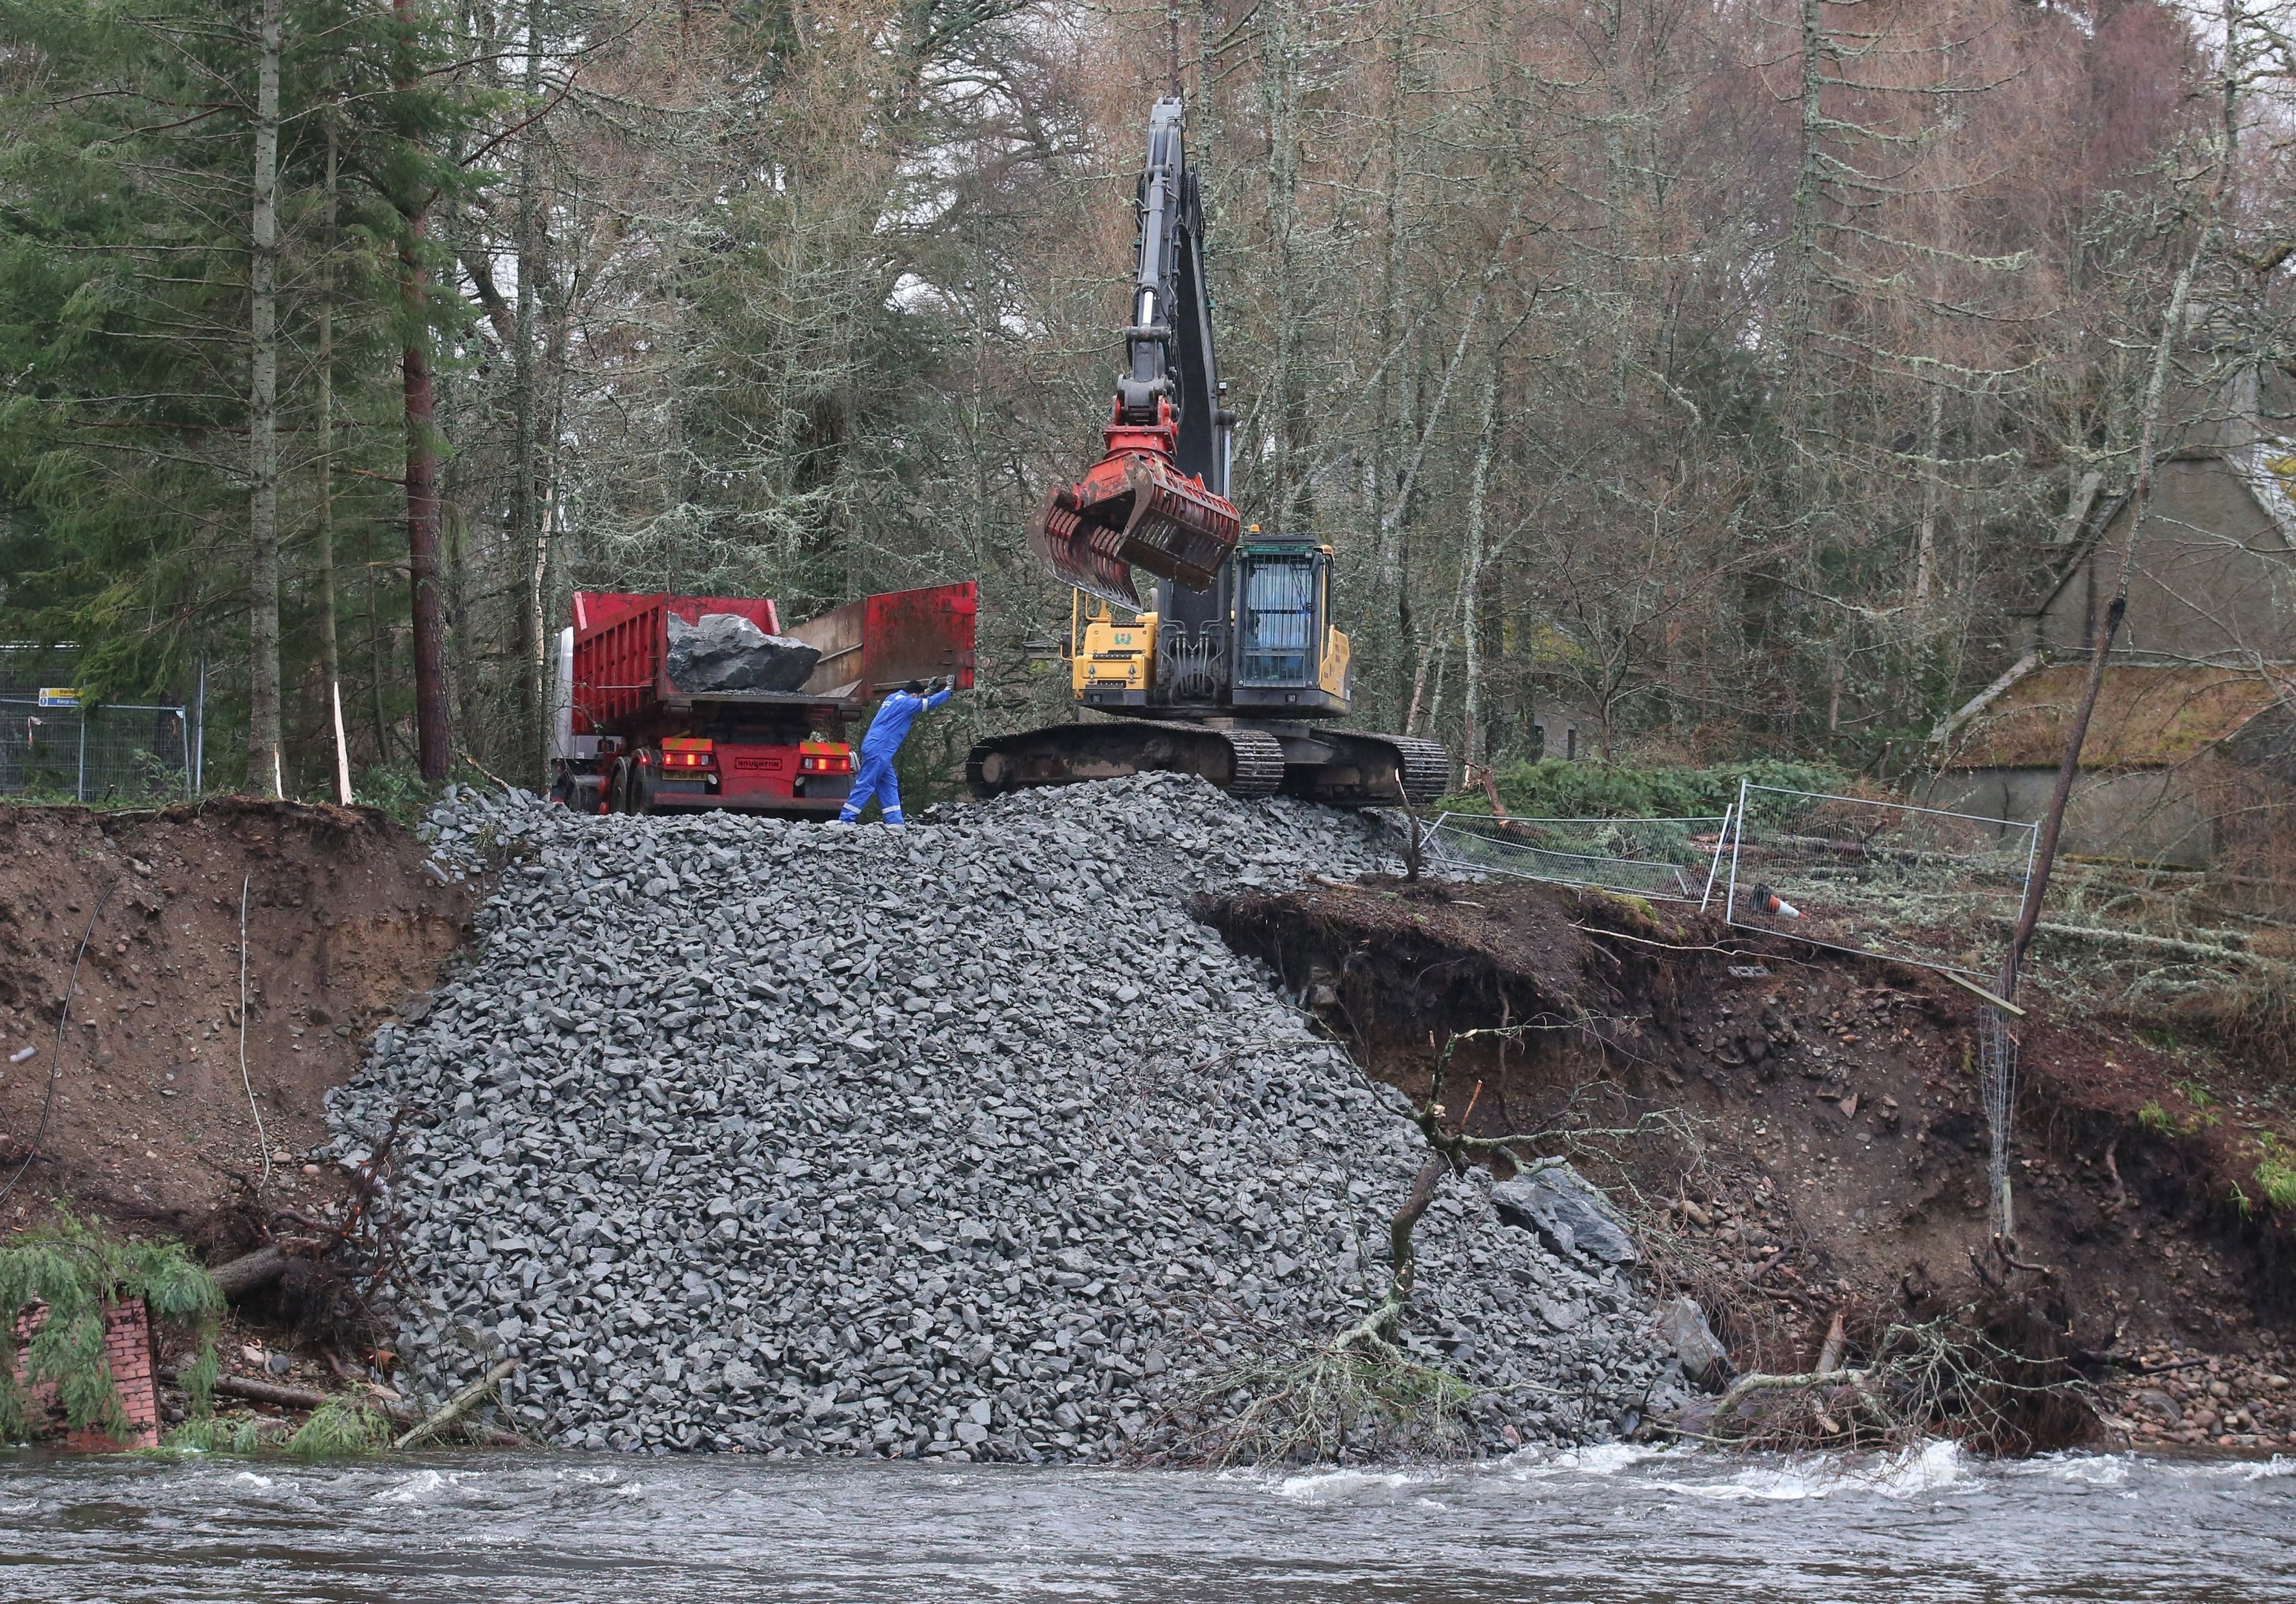 Rocks and boulders are moved to protect the shoreline on the River Dee  after Abergeldie Castle came close to being  washed  away in storms last week. PRESS ASSOCIATION Photo. Picture date: Wednesday January 6, 2016. Photo credit should read: Andrew Milligan/PA Wire